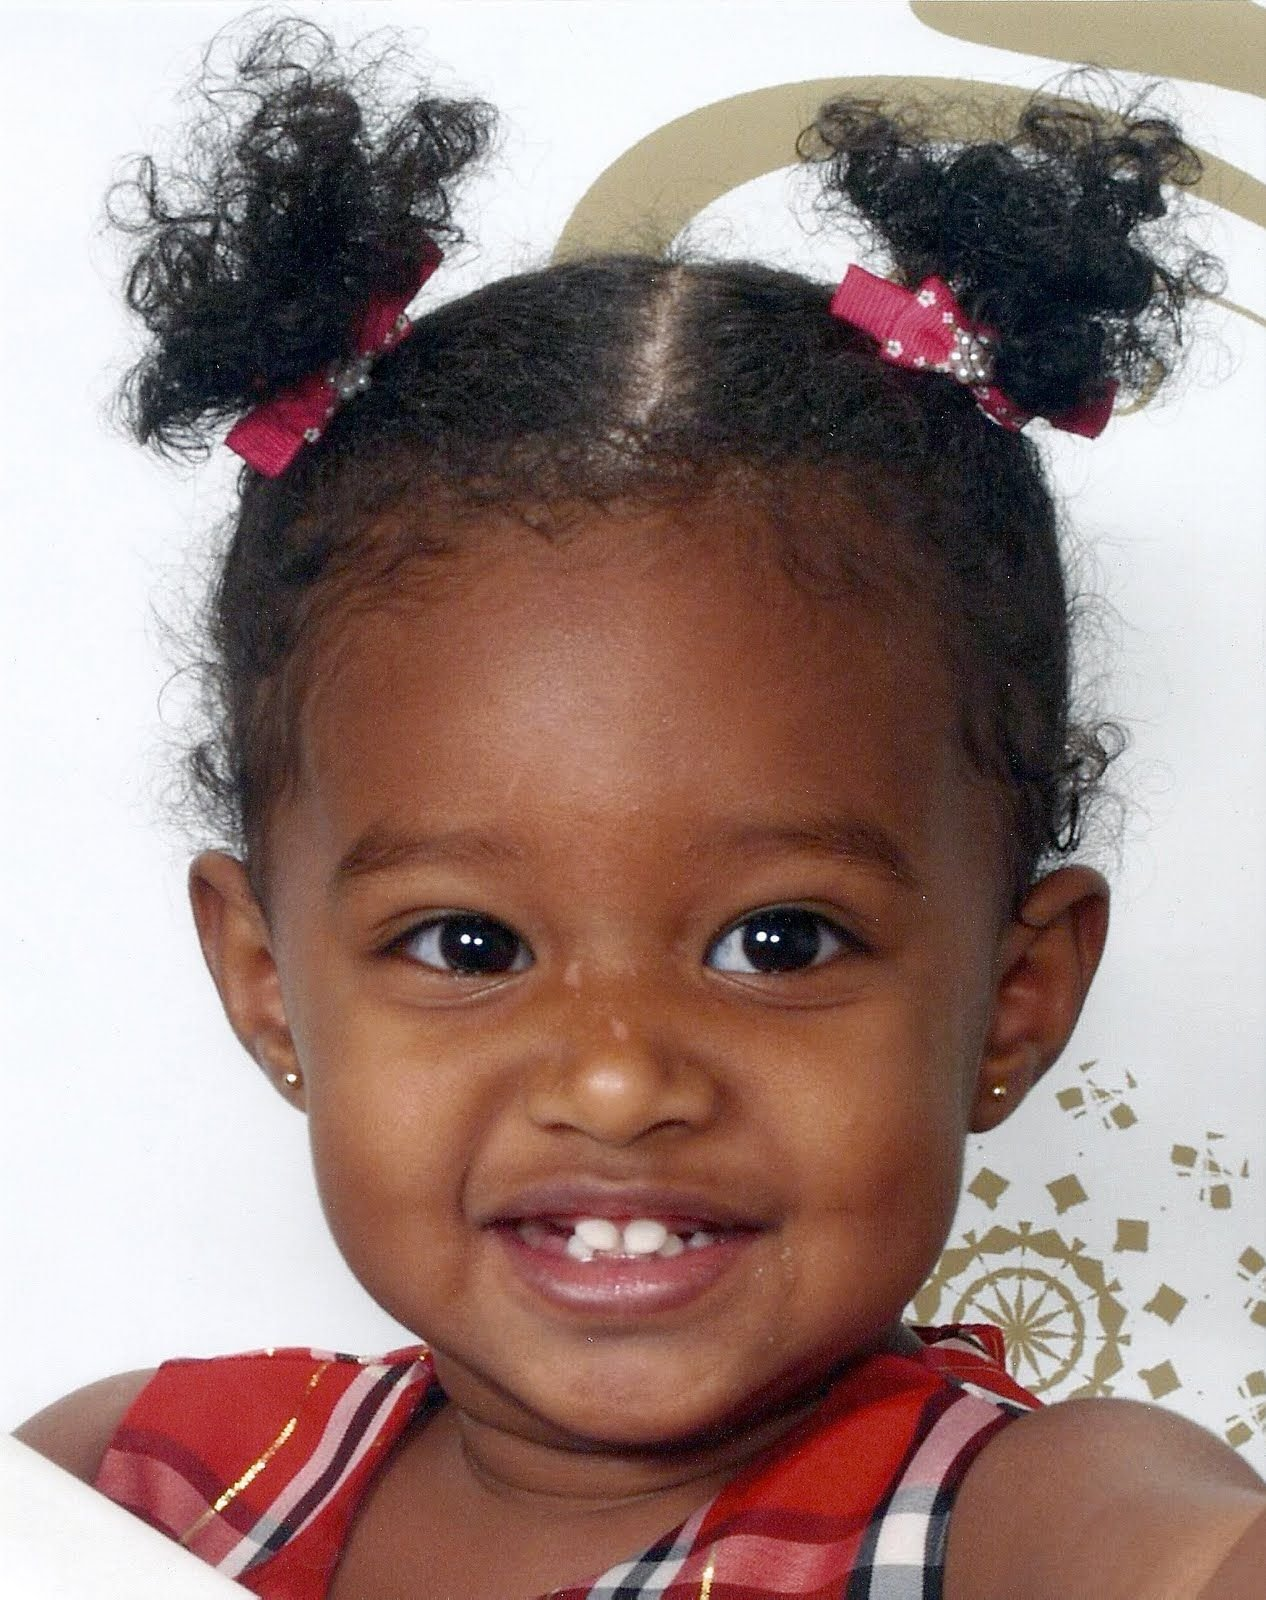 New 1 Year Old Black Baby Girl Hairstyles All American Ideas With Pictures